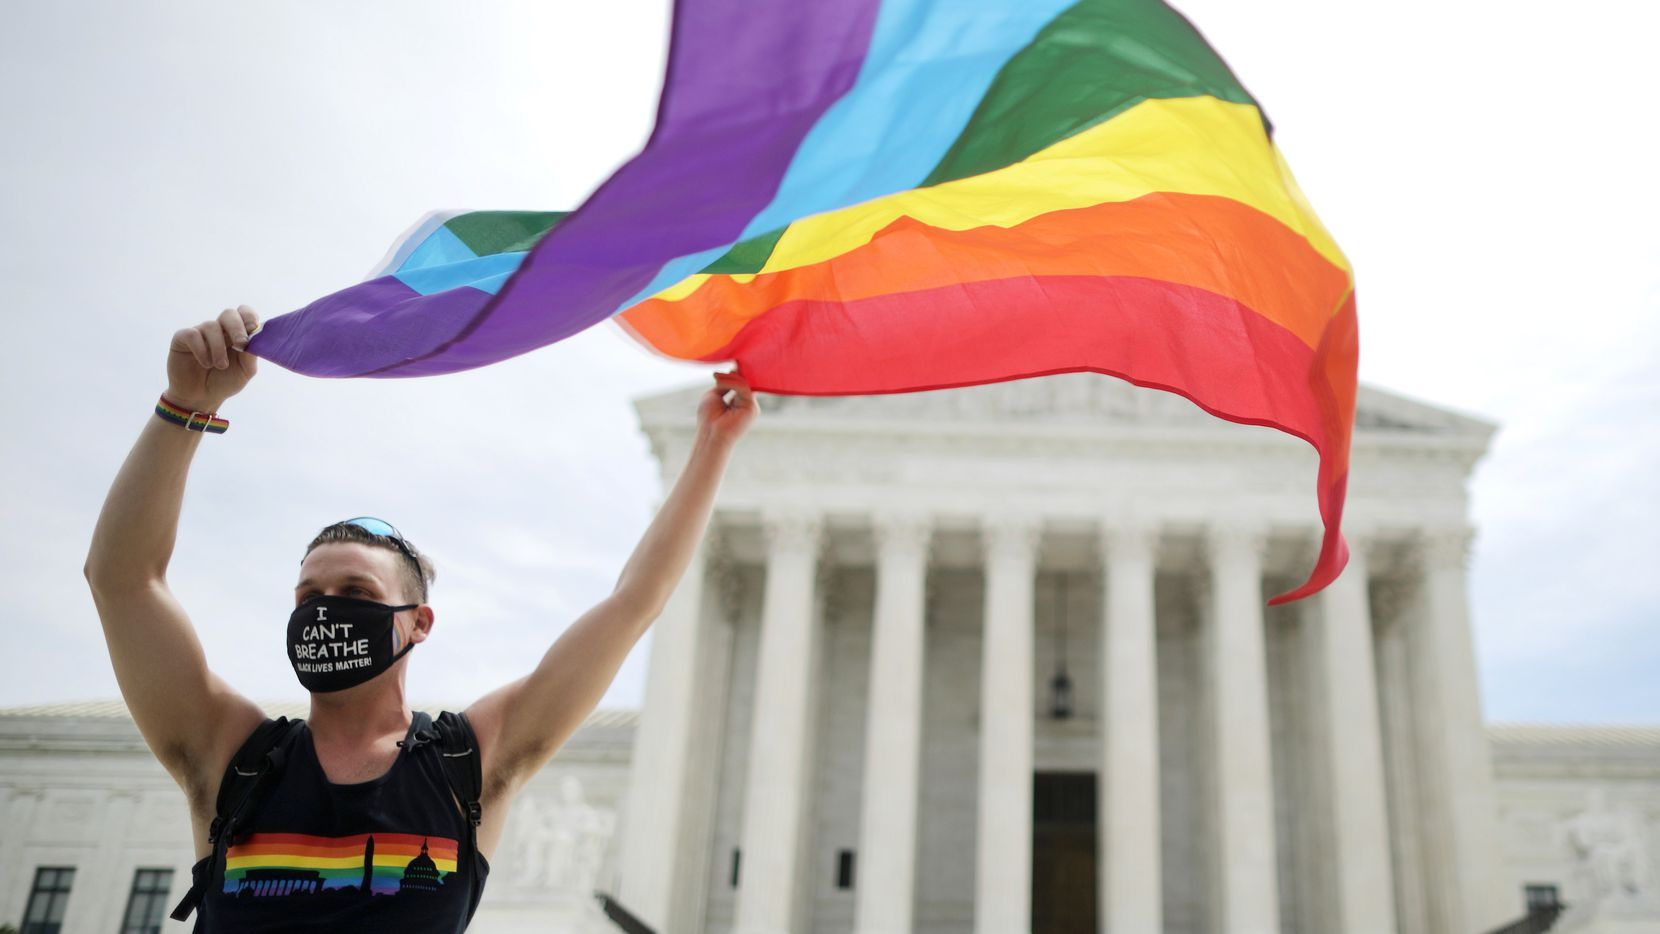 Joseph Fons, holding a Pride Flag, stands in front of the U.S. Supreme Court building after the court ruled that LGBTQ people can not be disciplined or fired based on their sexual orientation June 15, 2020 in Washington, DC. With Chief Justice John Roberts and Justice Neil Gorsuch joining the Democratic appointees, the court ruled 6-3 that the Civil Rights Act of 1964 bans bias based on sexual orientation or gender identity.